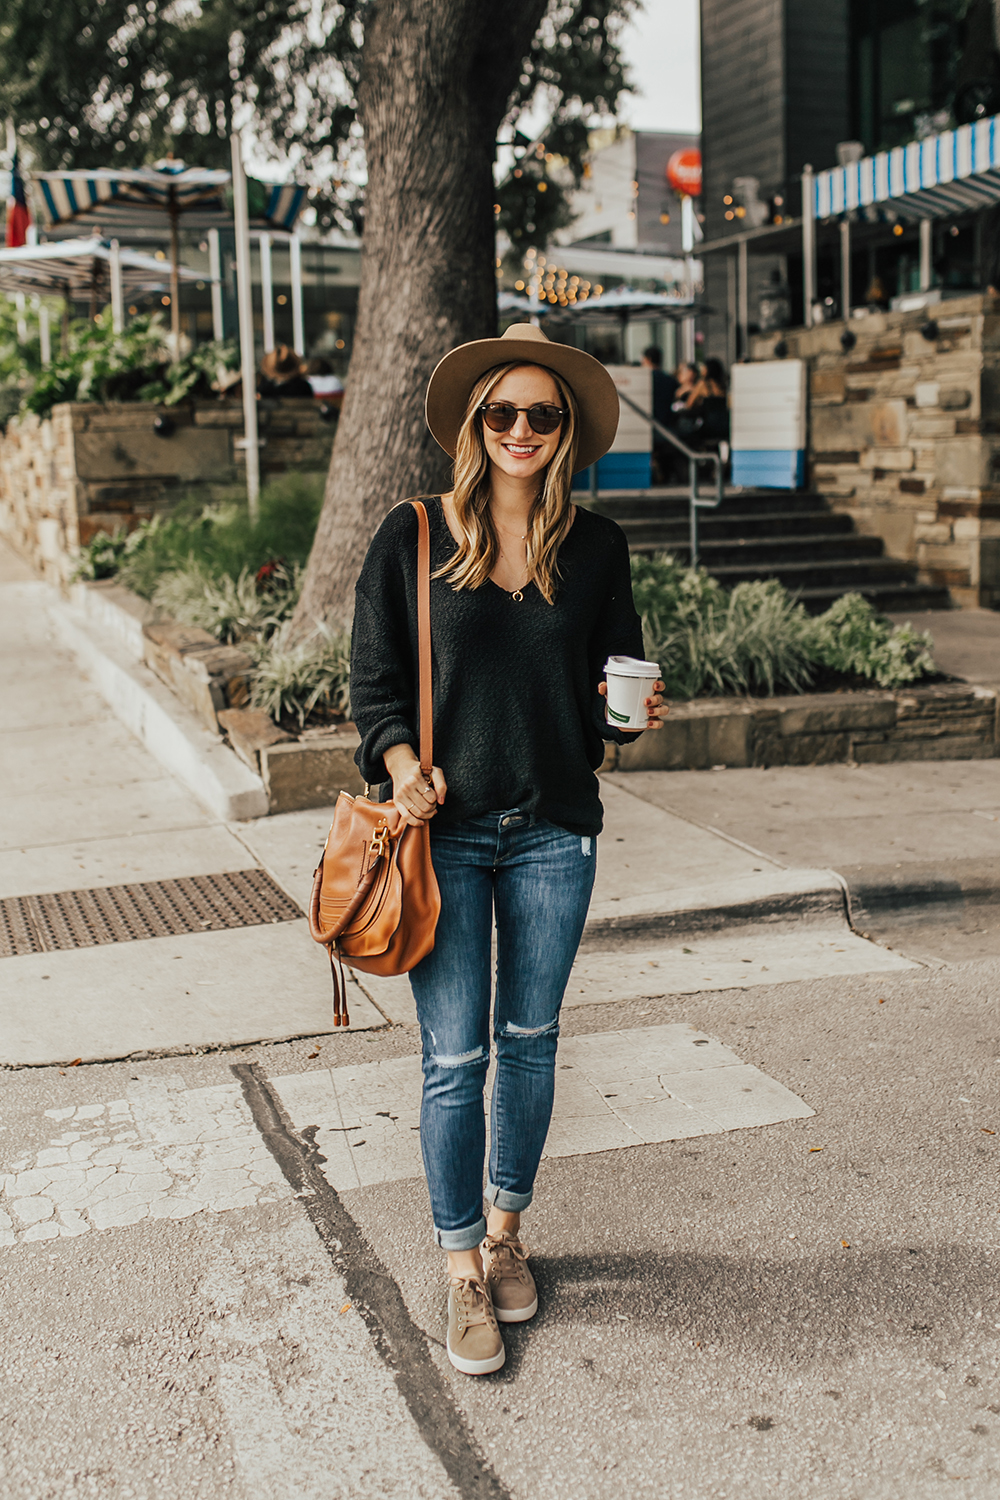 livvyland-blog-olivia-watson-austin-texas-fashion-style-blogger-koolaburra-ugg-taupe-suede-sneakers-fall-outfit-5